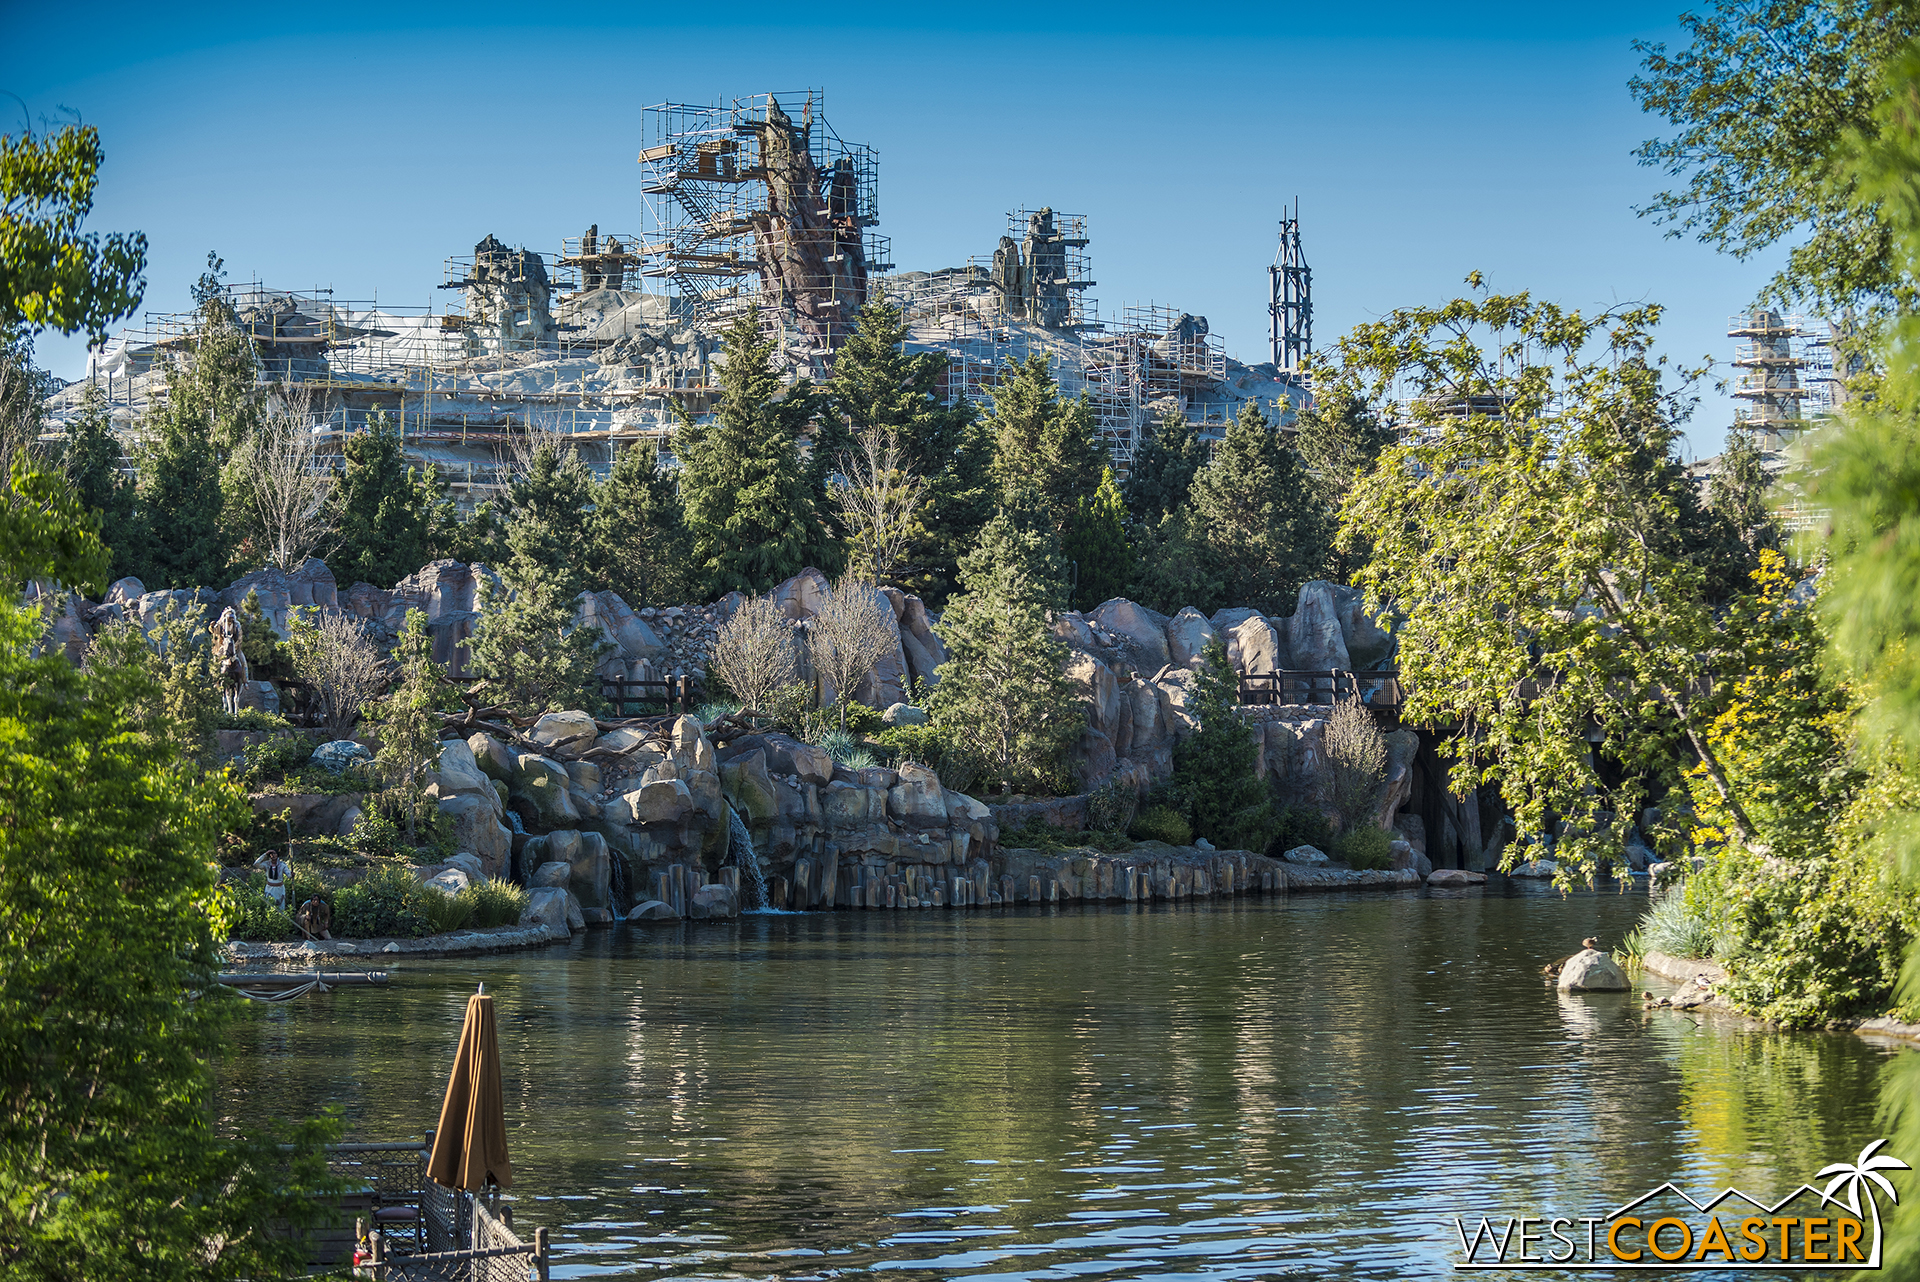 The scale against the redone back end of the Rivers of America is snazzy… it's actually quite pretty.